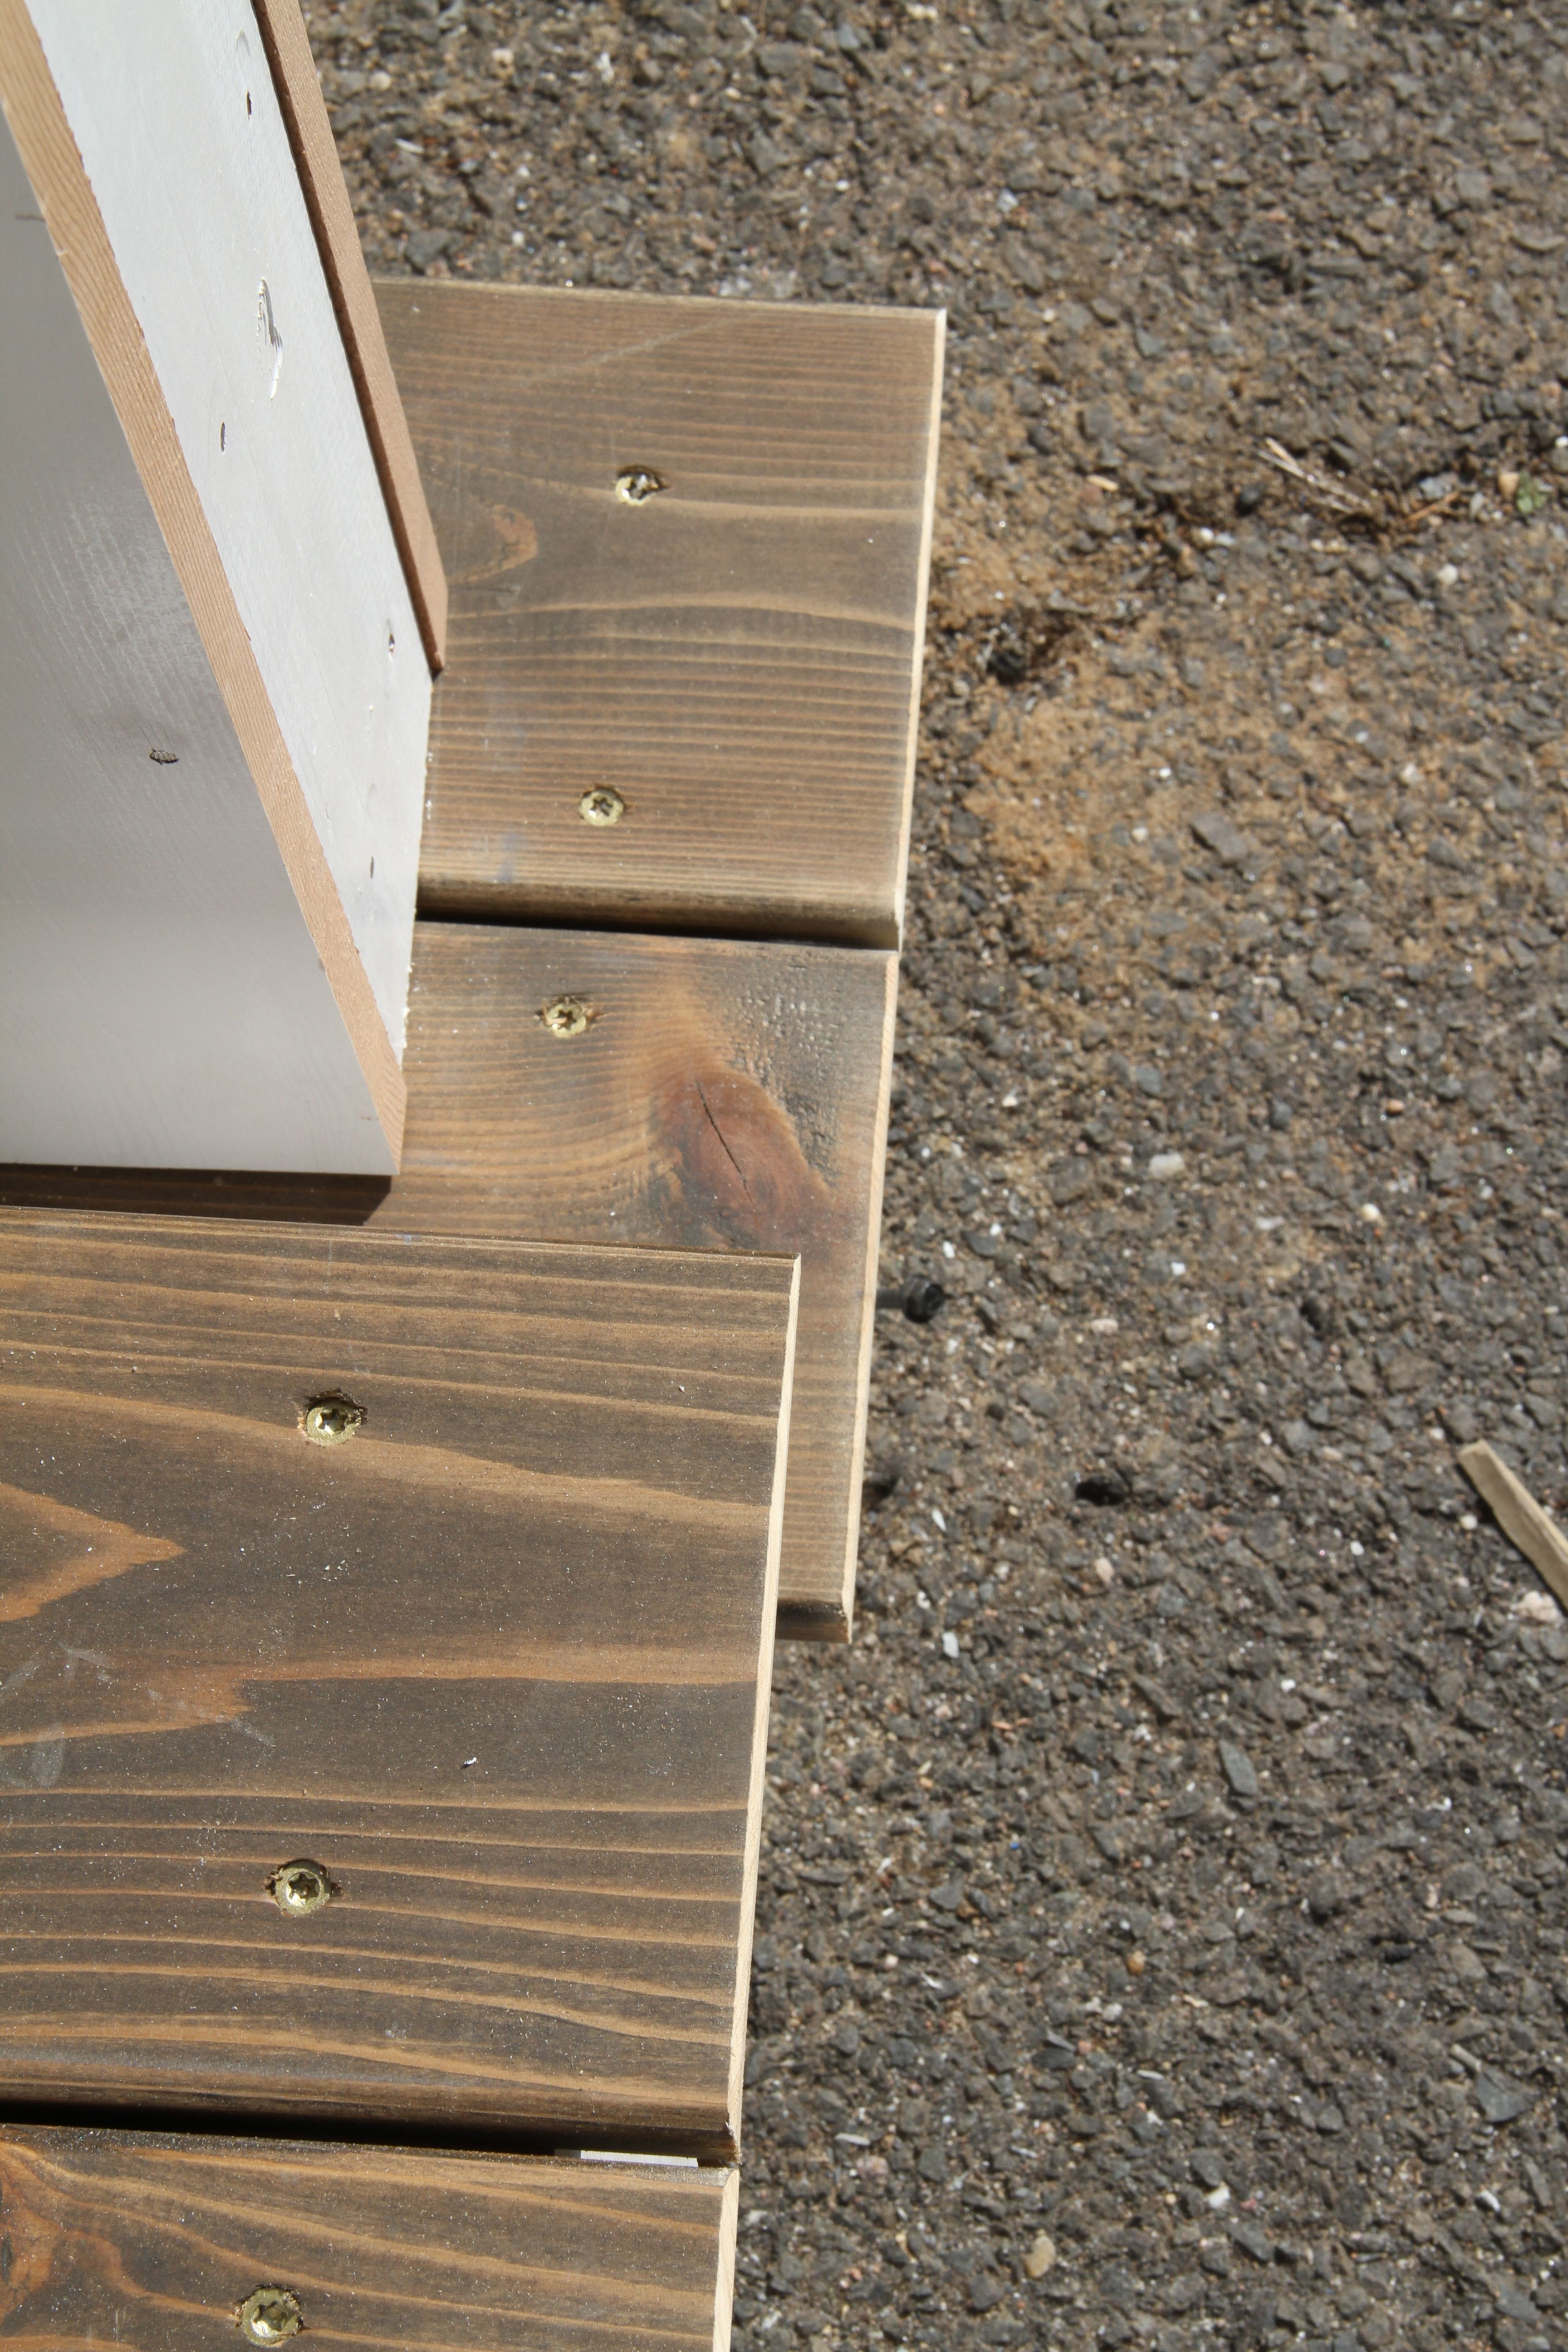 Jonas chose golden decking screws which I would normally have complained about, but in fact worked very well with the stain and the cedar. Touche, my friend. Touche.